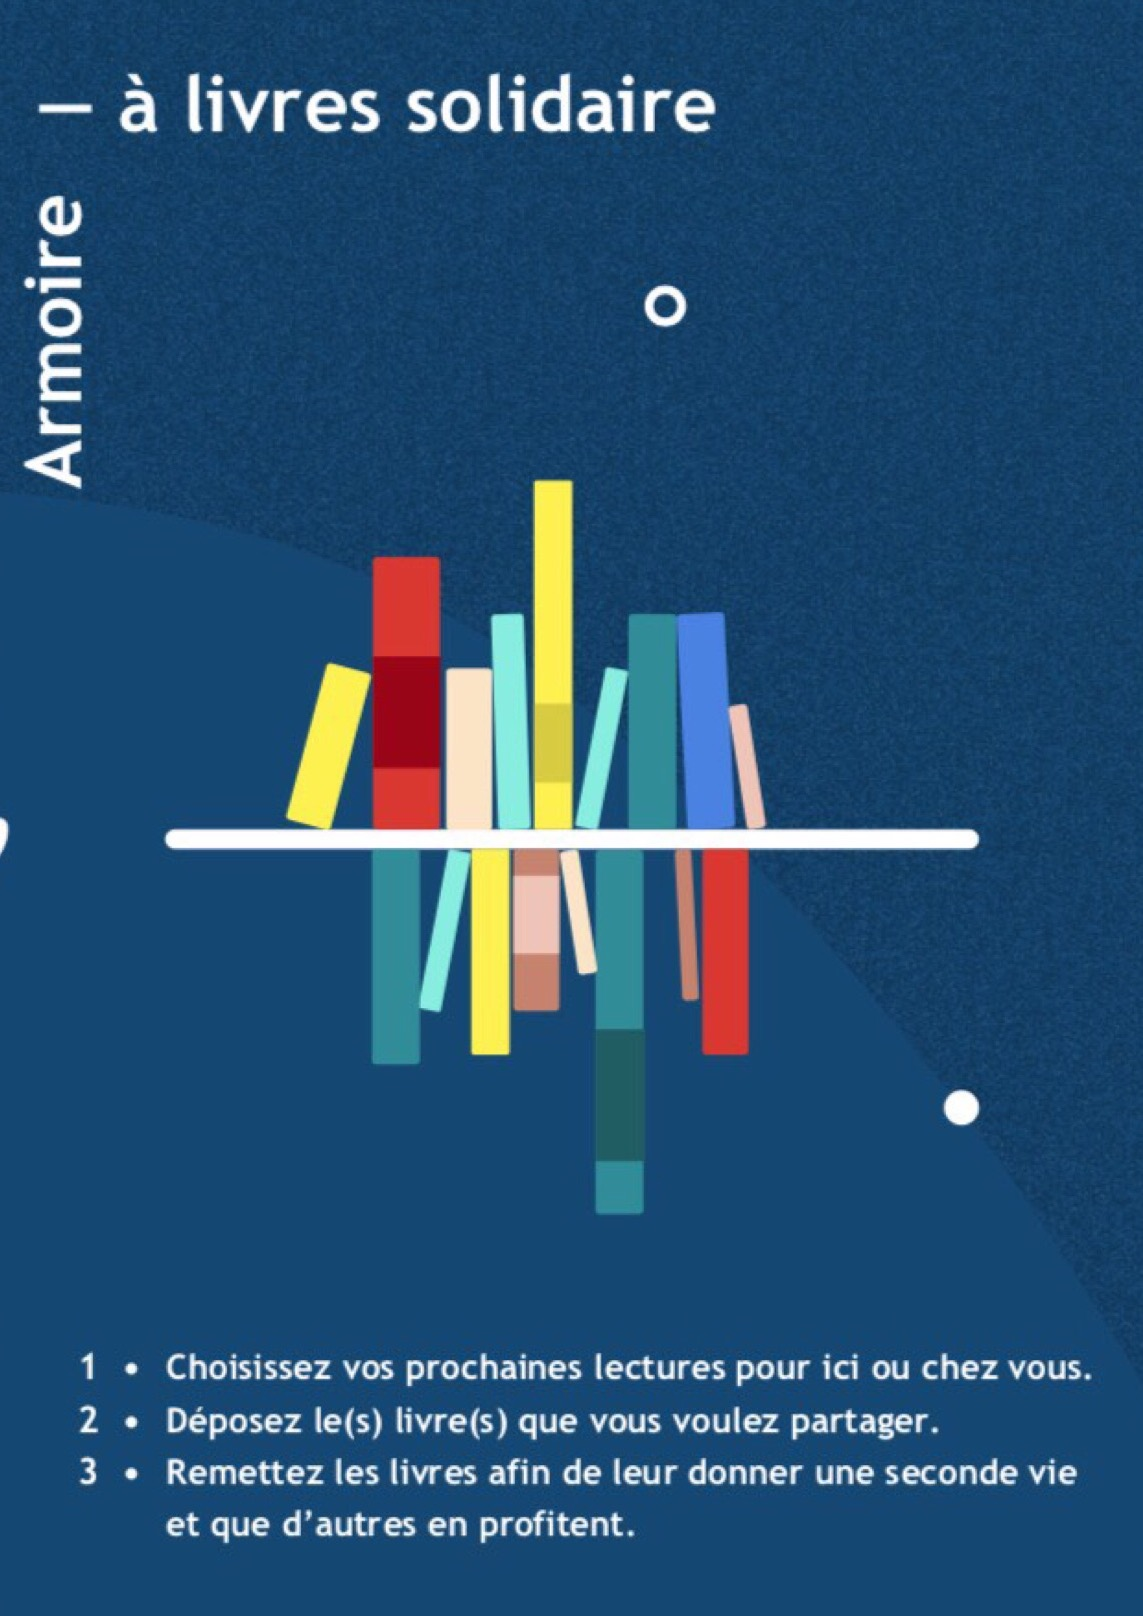 armoire a livres solidaire logo